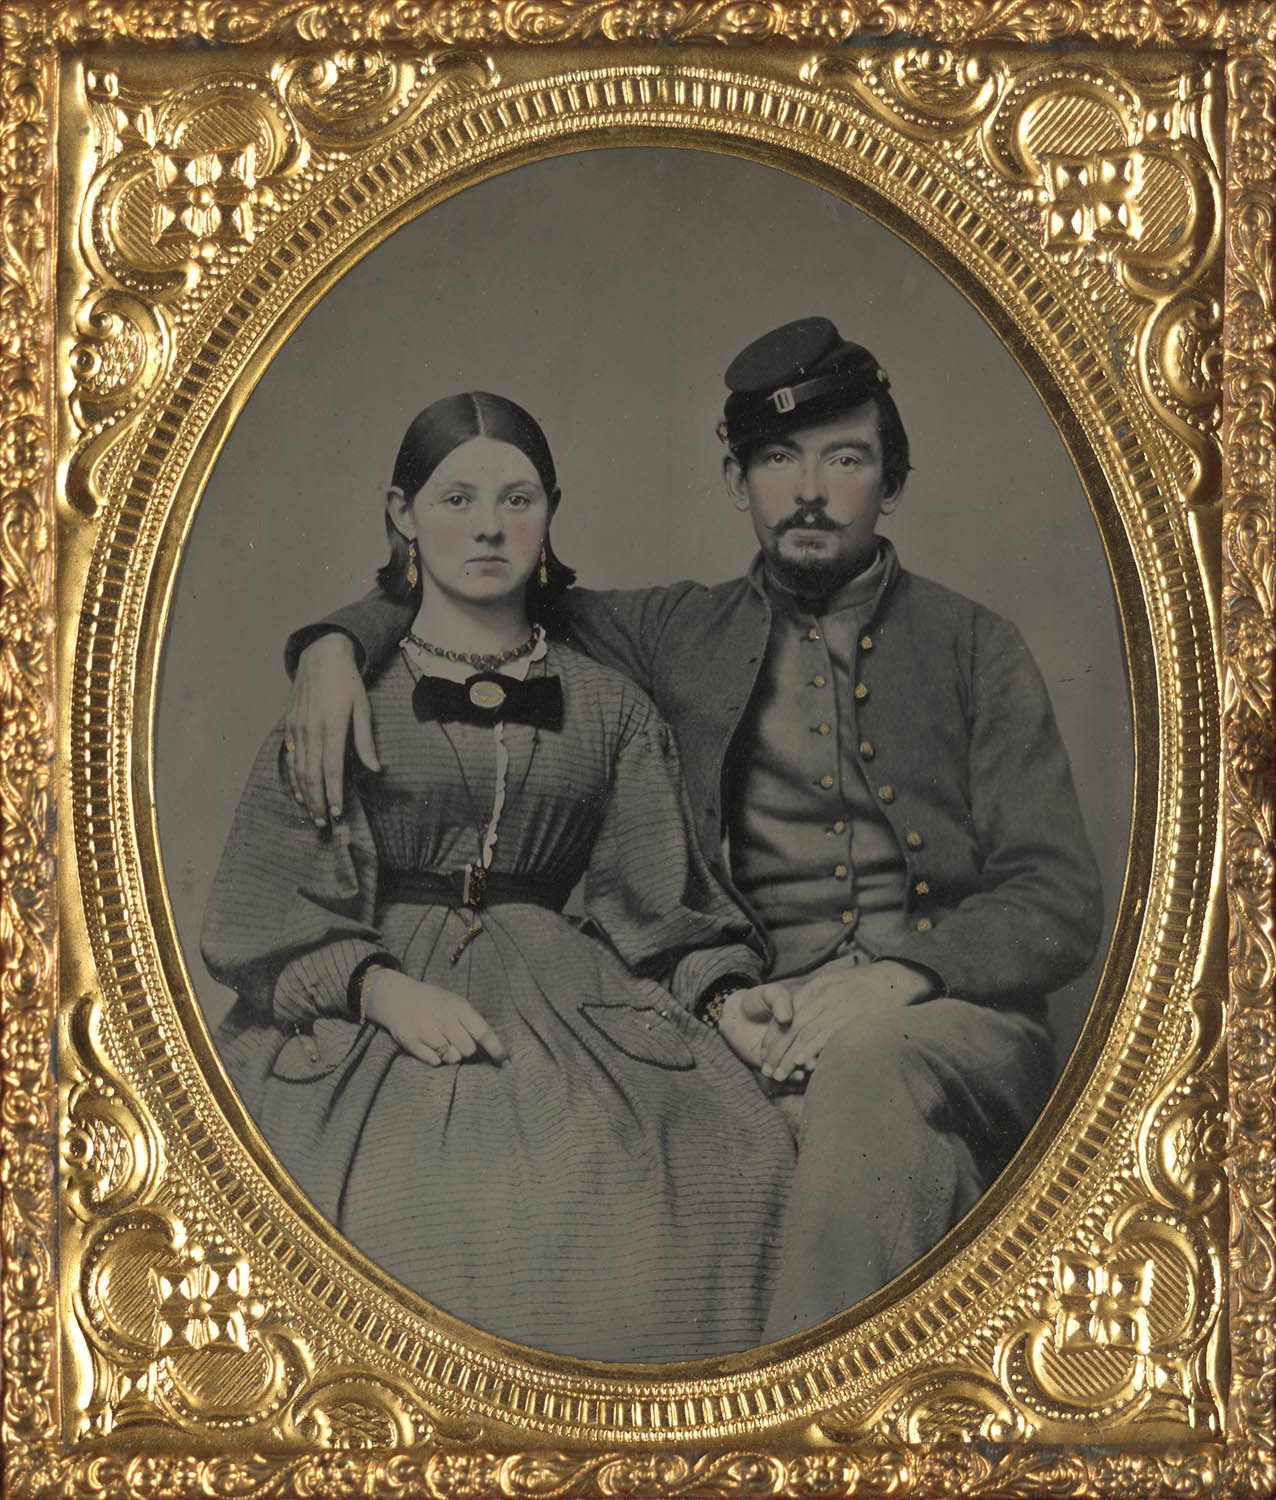 Ambrotype Photograph